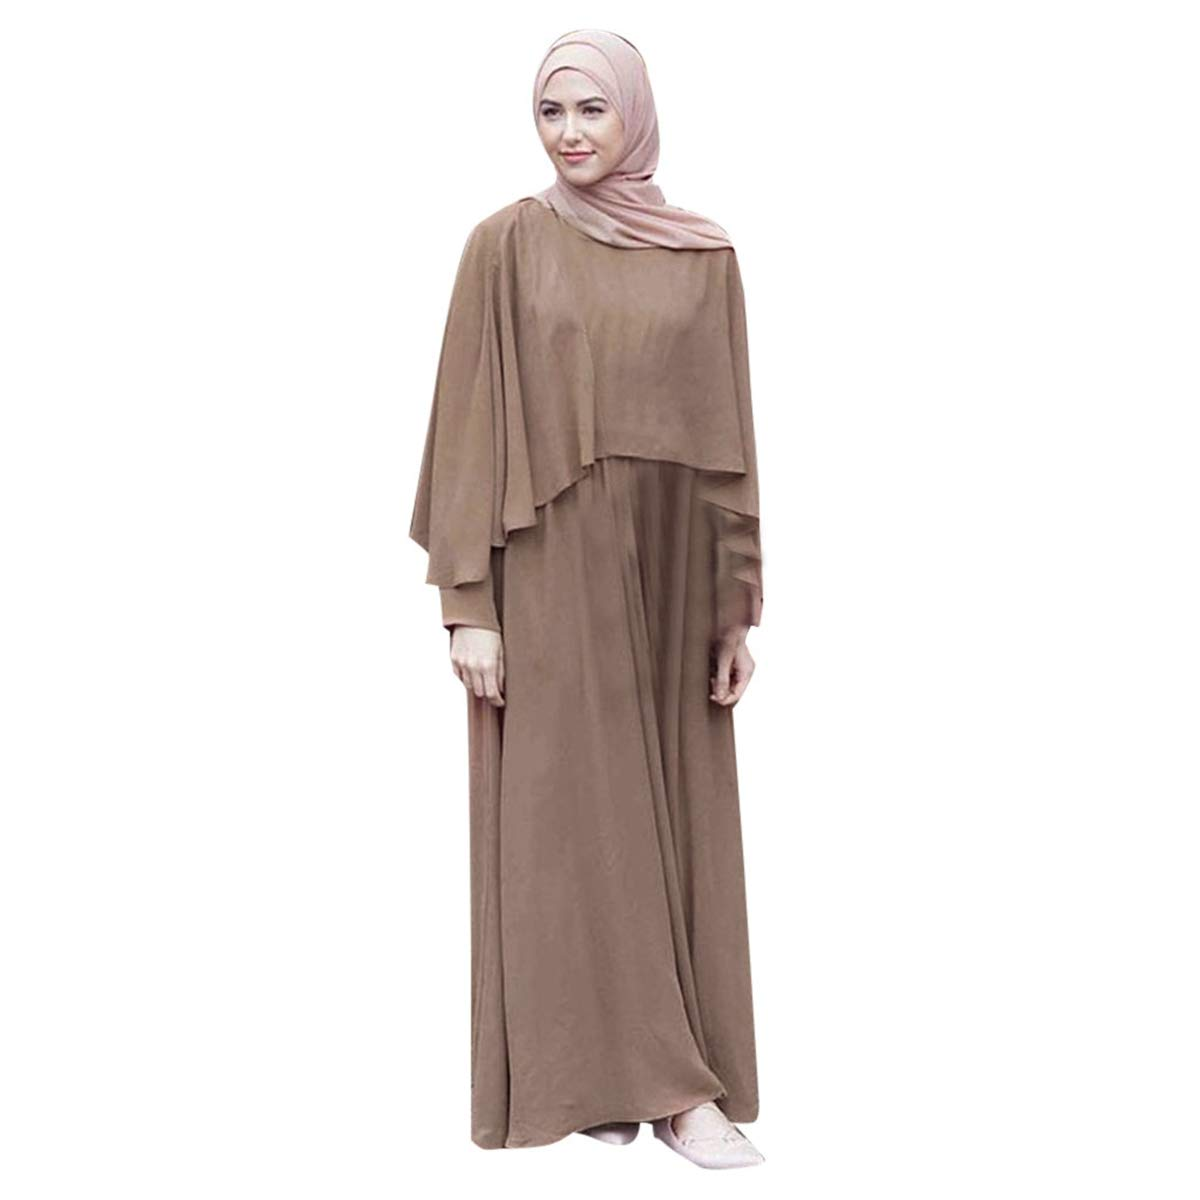 f9b1128729843 Amazon.com: 2019 New! Vintage Women Dress,Muslim Kaftan Abaya Long ...